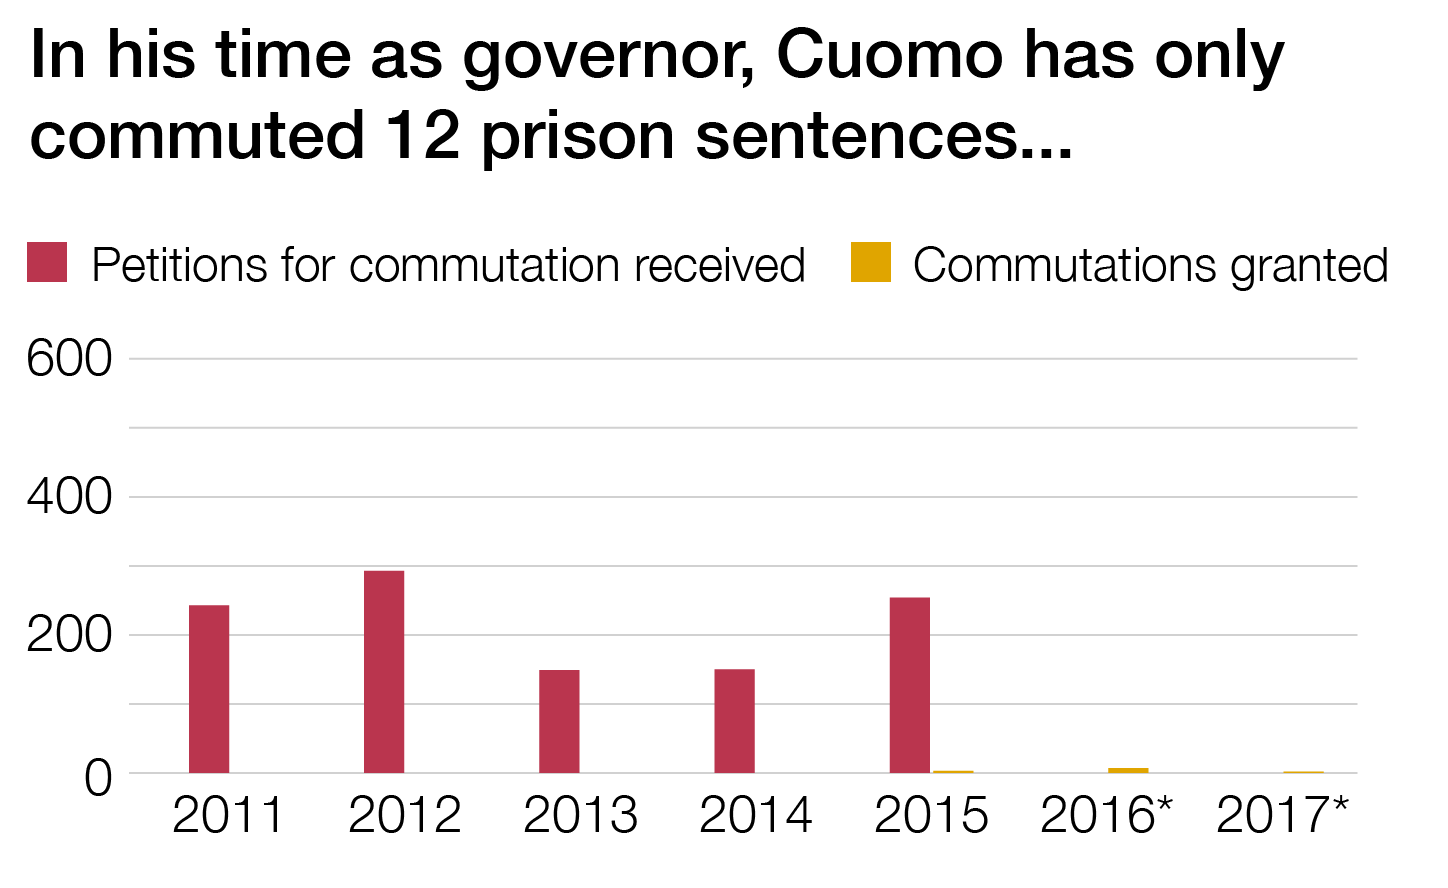 A graph displaying the numbers of petitions for clemency received versus commutations granted from 2011-2017. There are over a hundred applications in each year from 2011-2015. Zero commutations were issued from 2011-2014. In 2015 and 2016, a very small number were granted.  Data for clemency applications was not available in 2016 and 2017.